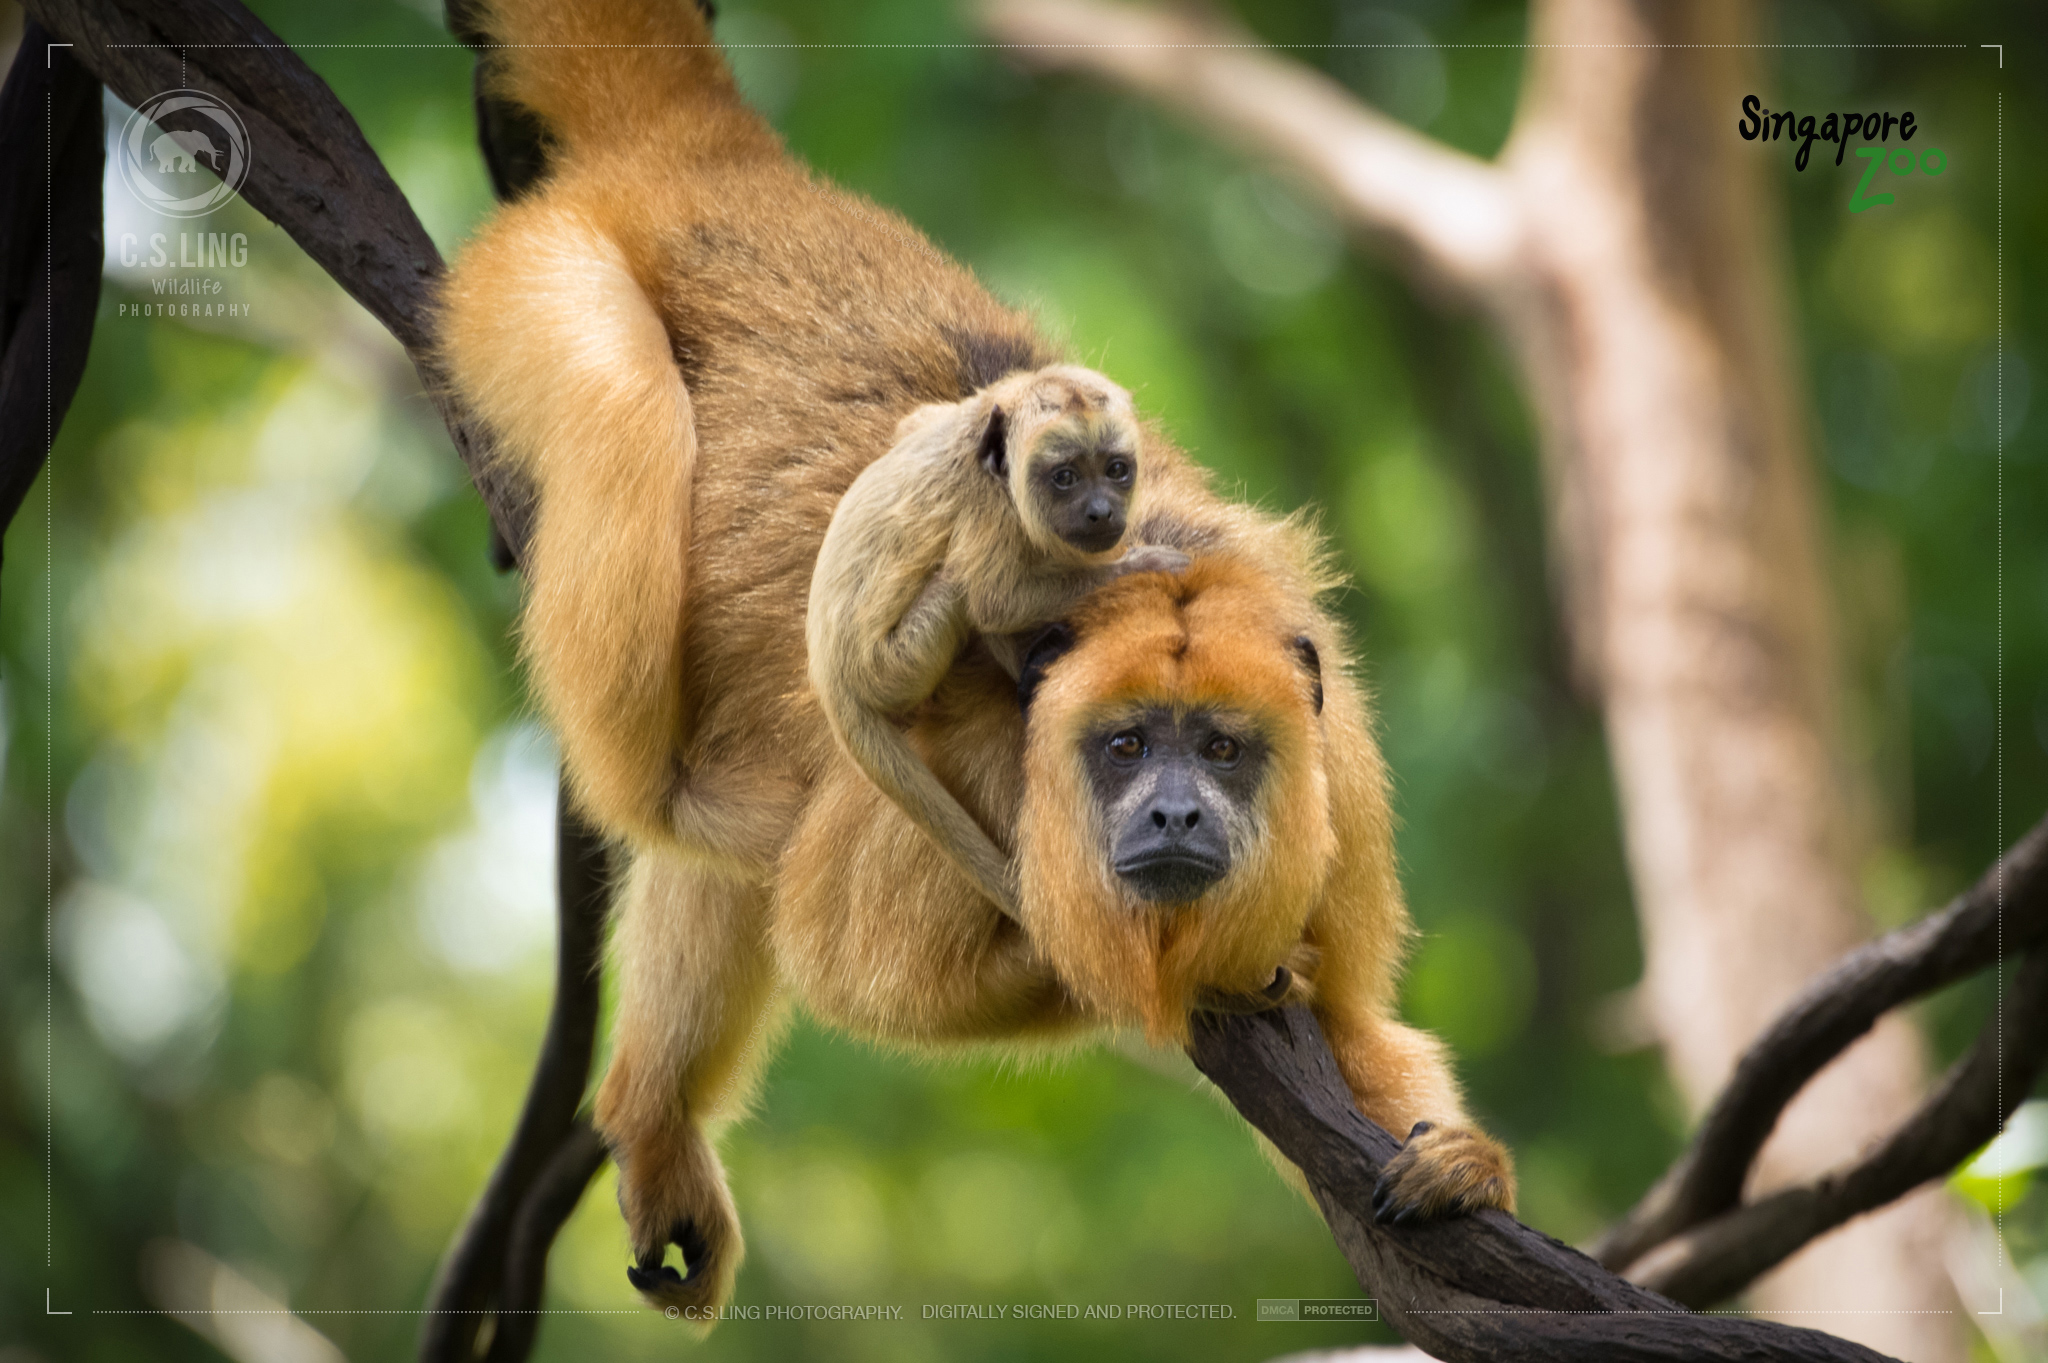 Black Howler Monkey Mother and Child by C.S.Ling